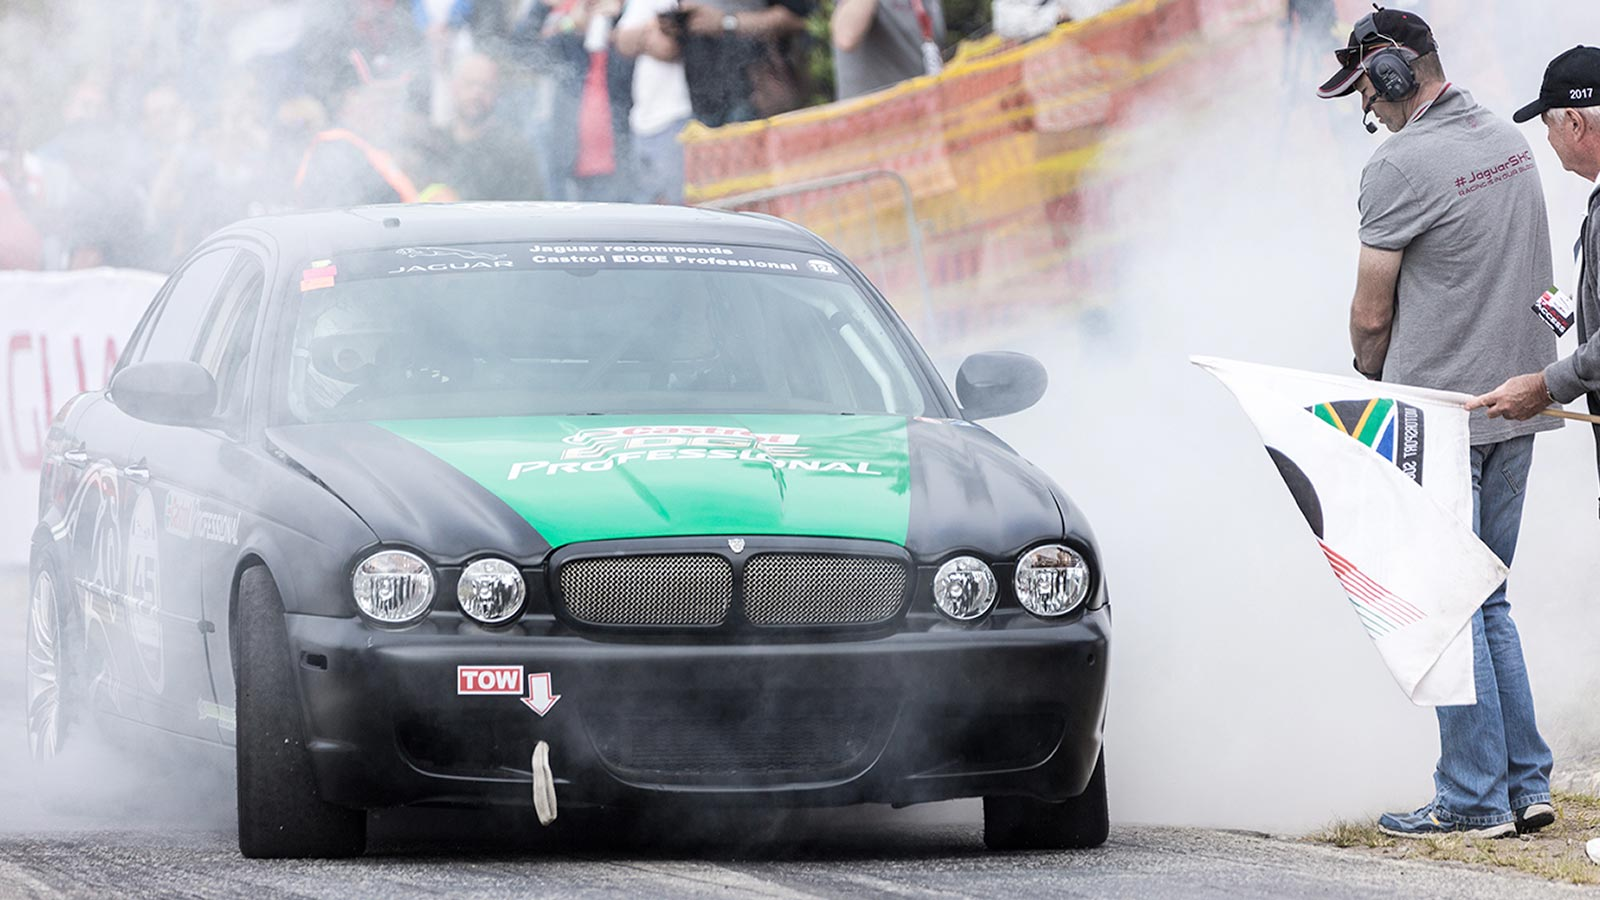 jaguar driving on a road with smoke around it.